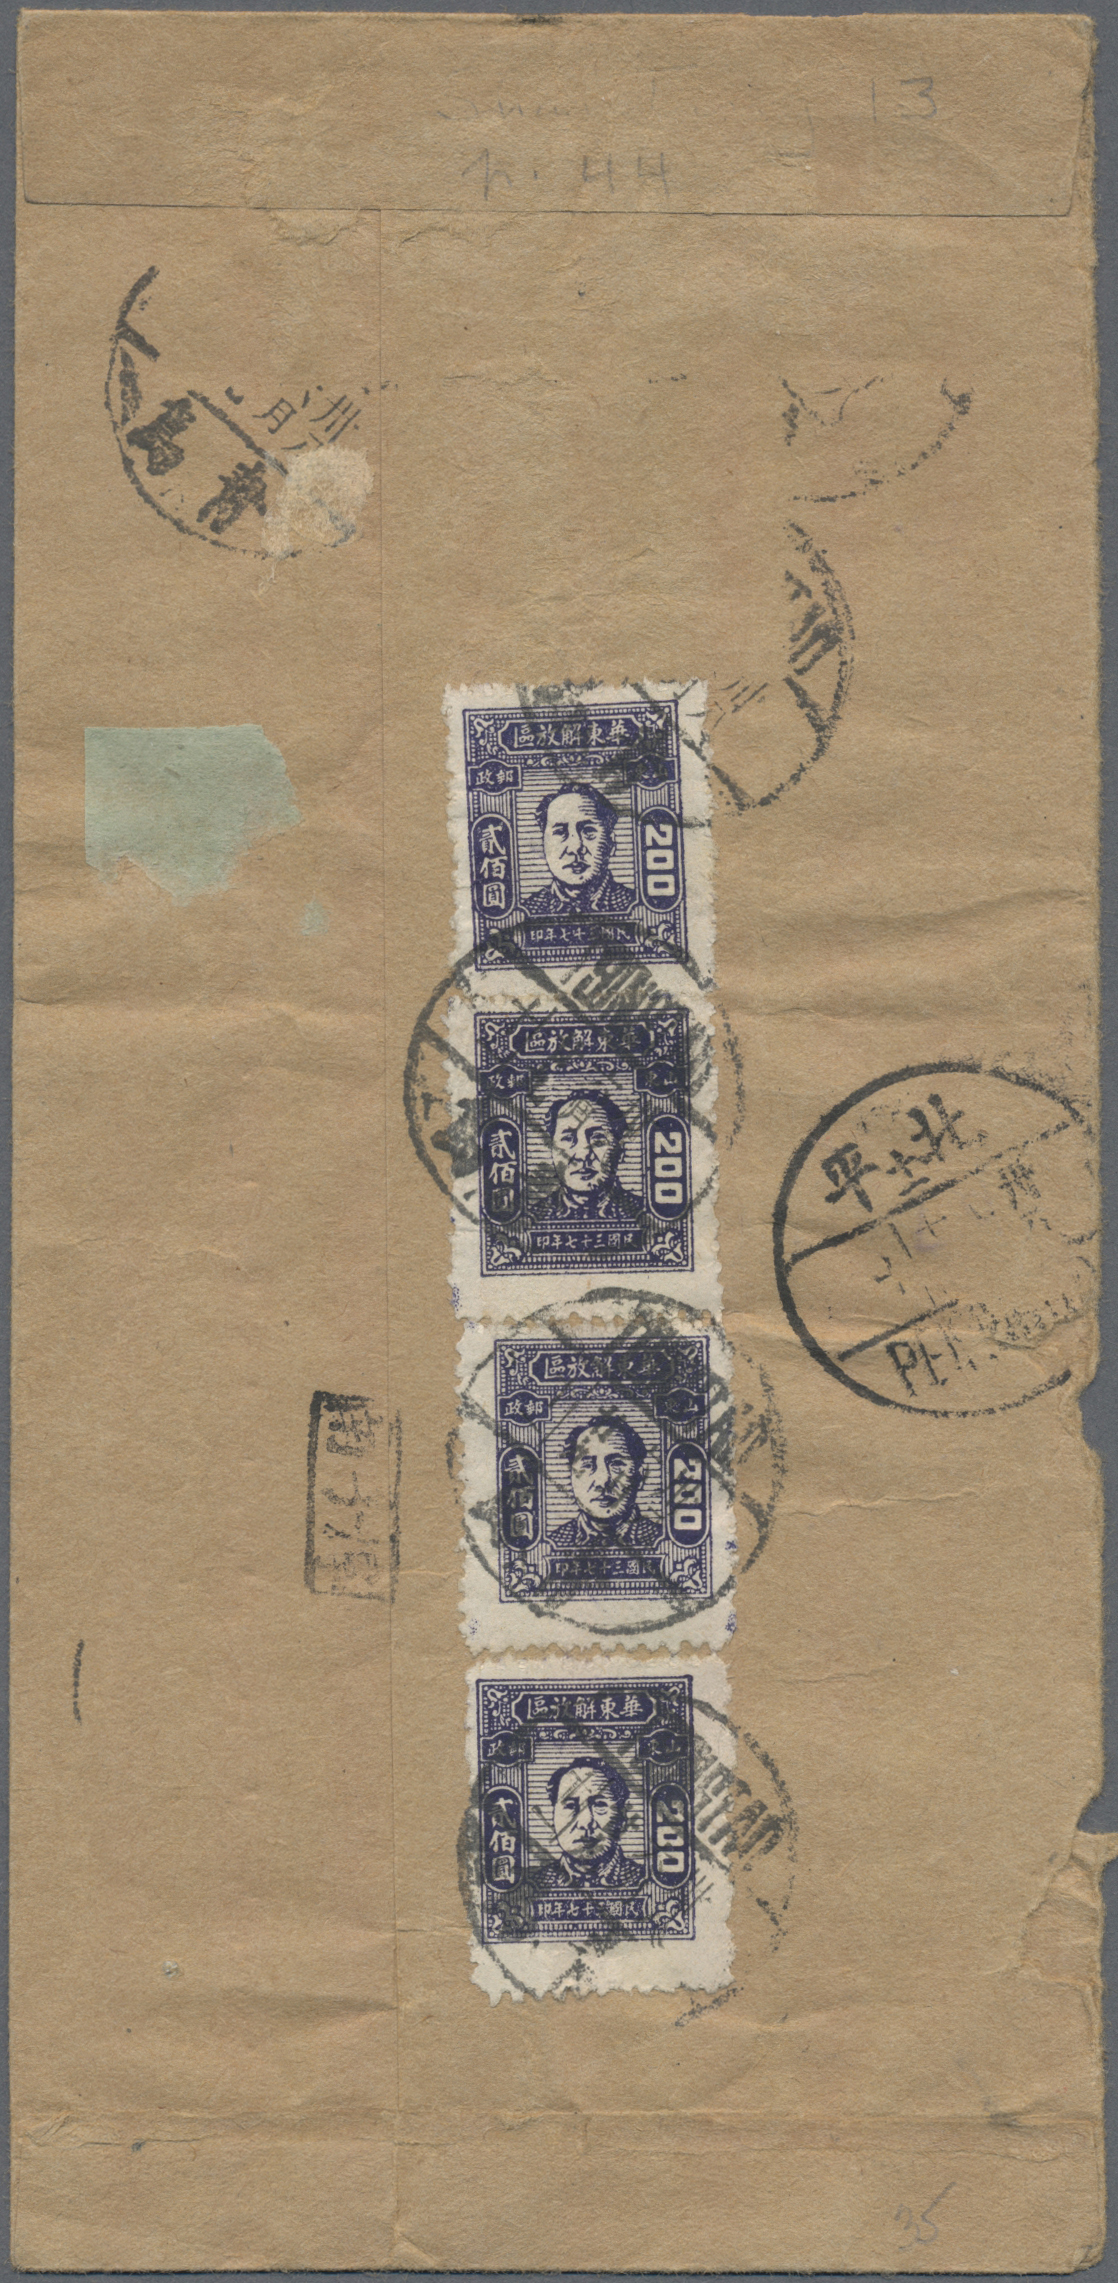 Lot 05090 - China - Volksrepublik - Provinzen  -  Auktionshaus Christoph Gärtner GmbH & Co. KG Sale #46 Special Auction China - including Liberated Areas